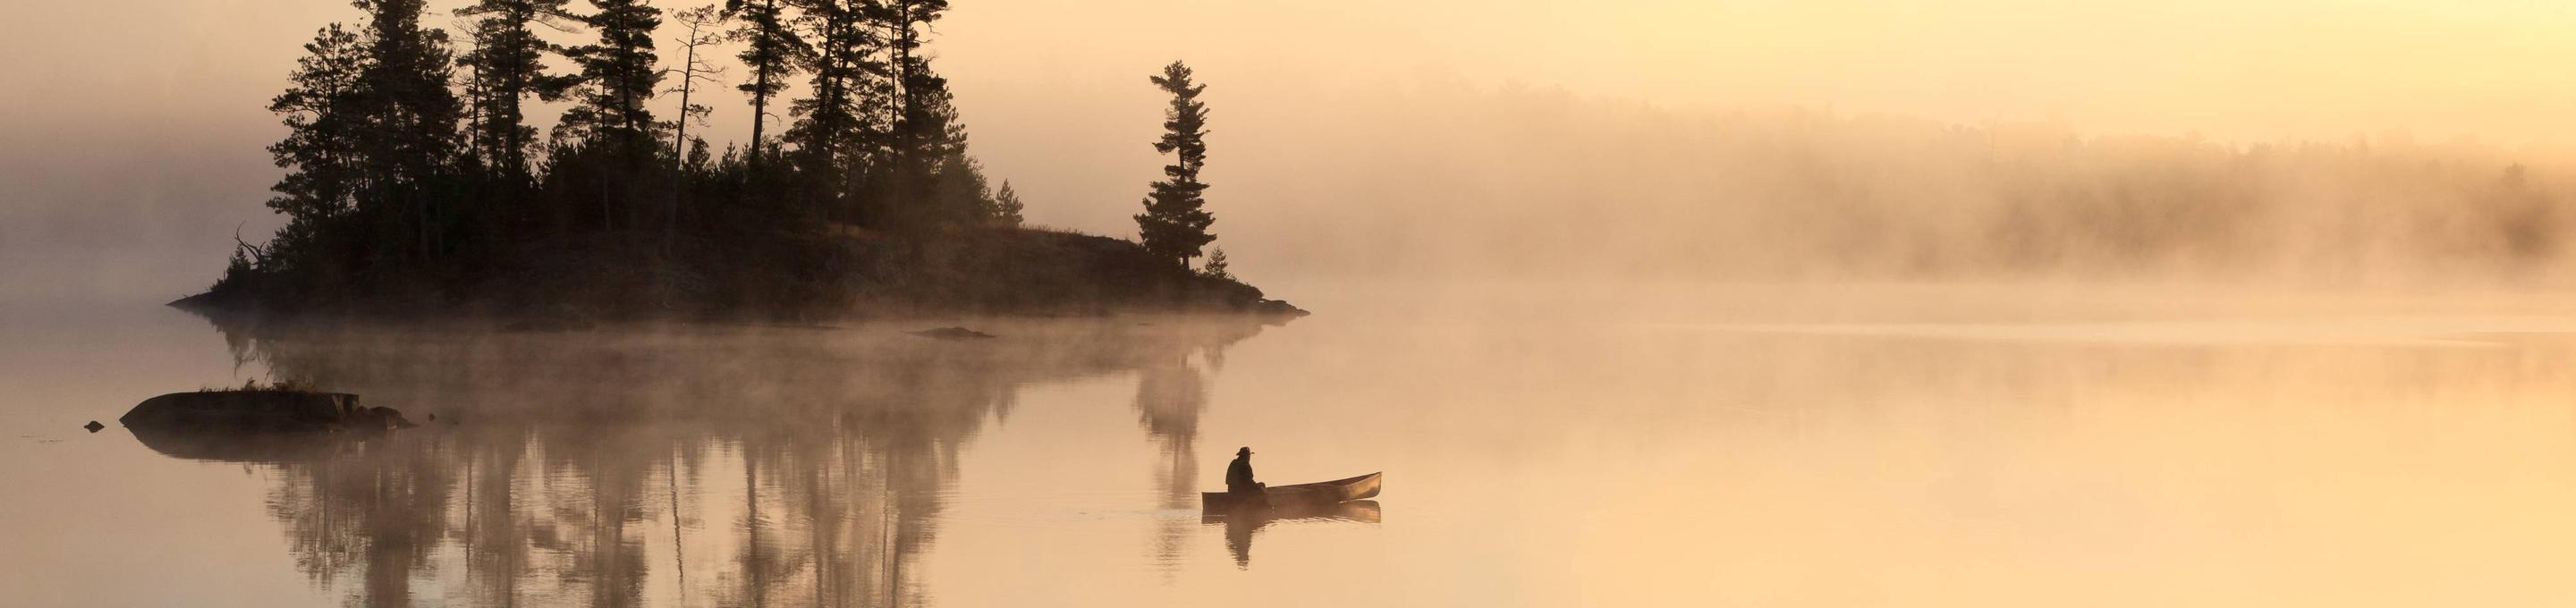 Paddler drifting on the water in Boundary Waters Canoe Area Wilderness.